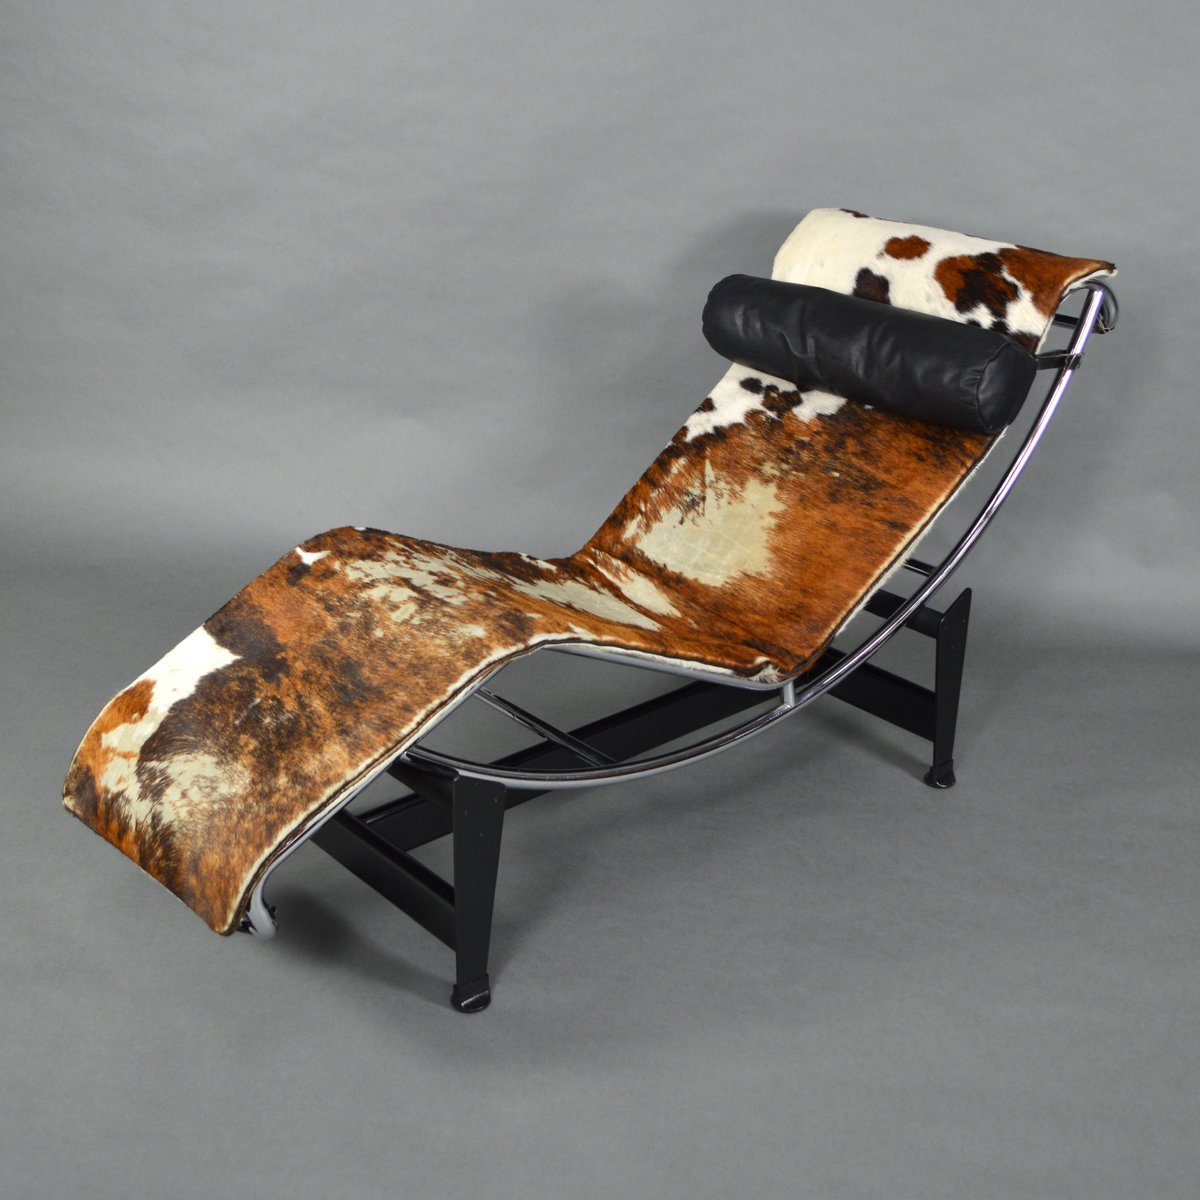 Lc4 chaise lounge by le corbusier for cassina 1960s for for Cassina chaise lounge